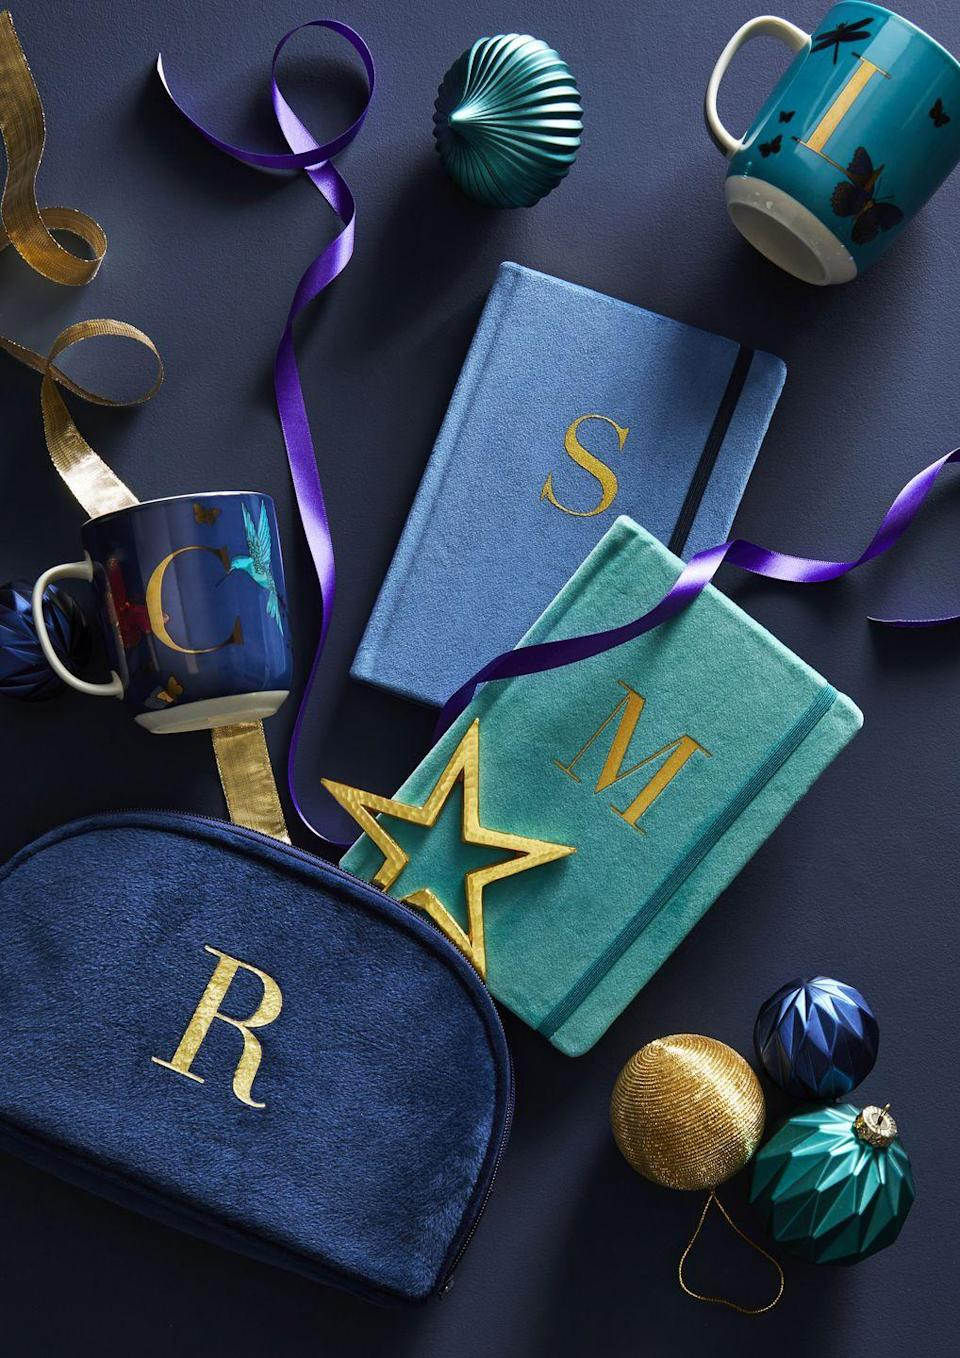 <p>Not sure what to gift your loved ones this year? Why not make it personal with Dunelm's range of monogrammed notebooks, mugs and cosmetic bags. In deep shades of teal and blue, they're the ultimate way to make a statement. </p>